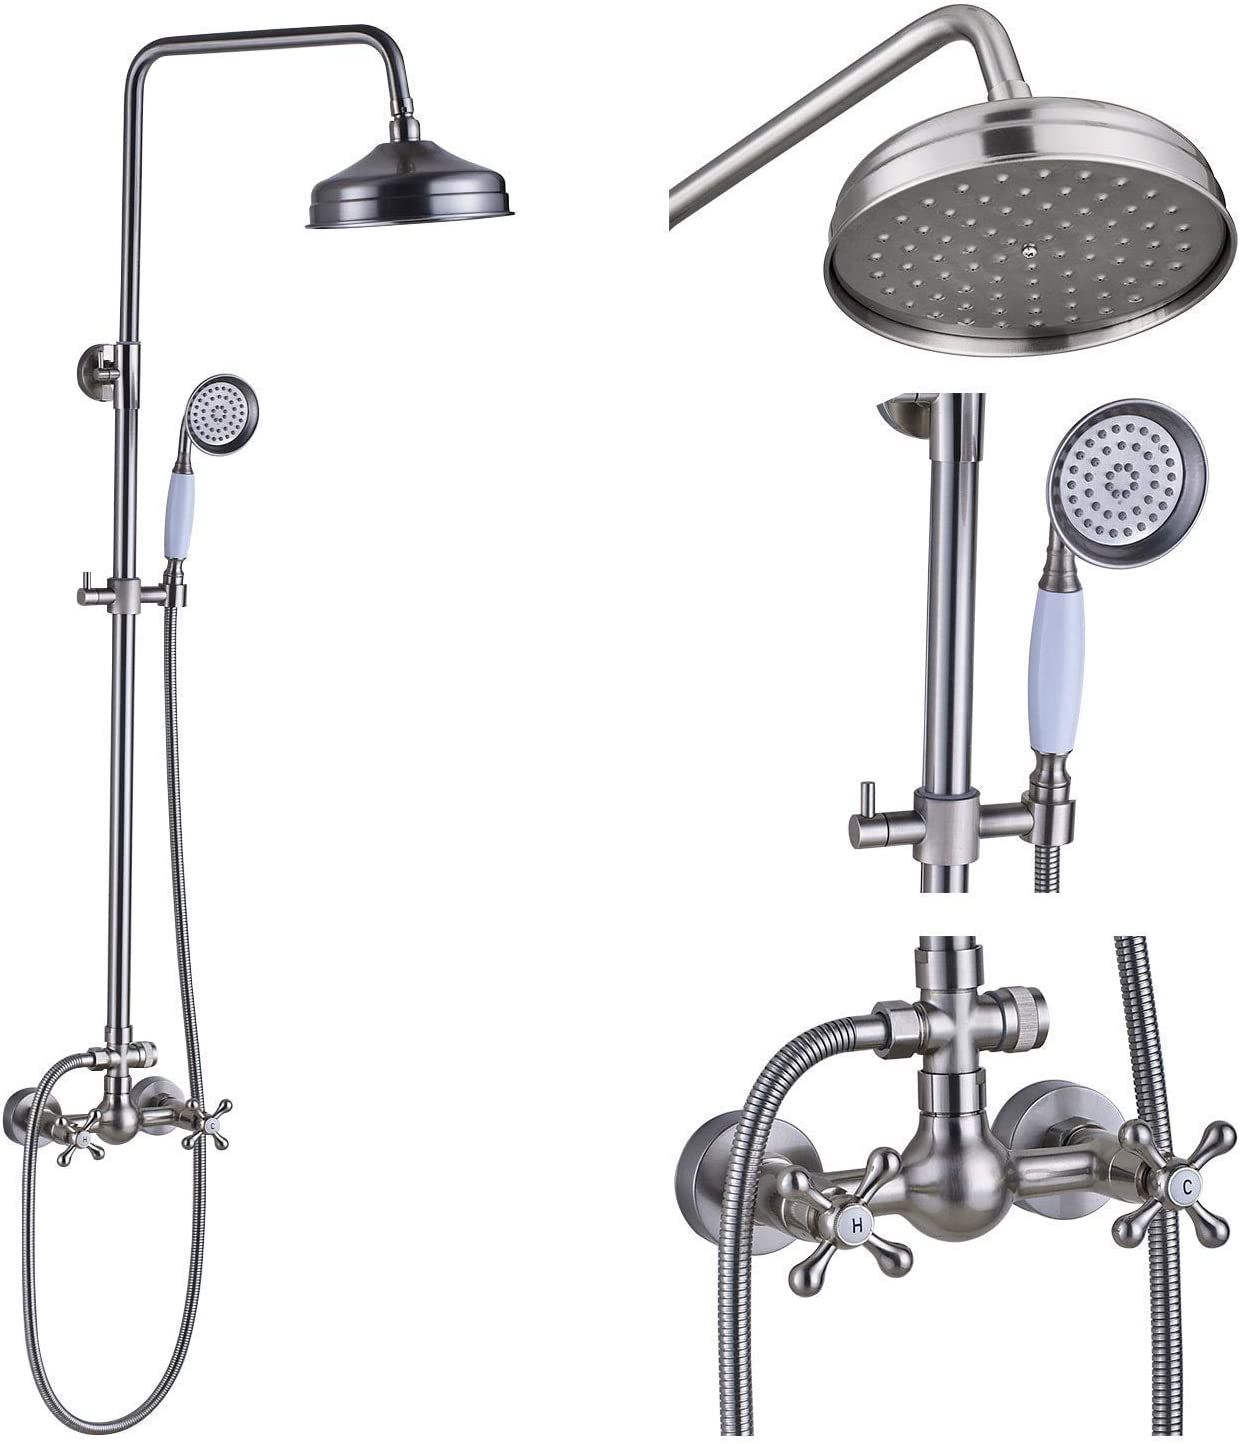 Rozin Brushed Nickel 2 Way Wall Mounted Bathroom Outdoor Rainfall Shower Mixer Tap with Handheld Sprayer Faucet